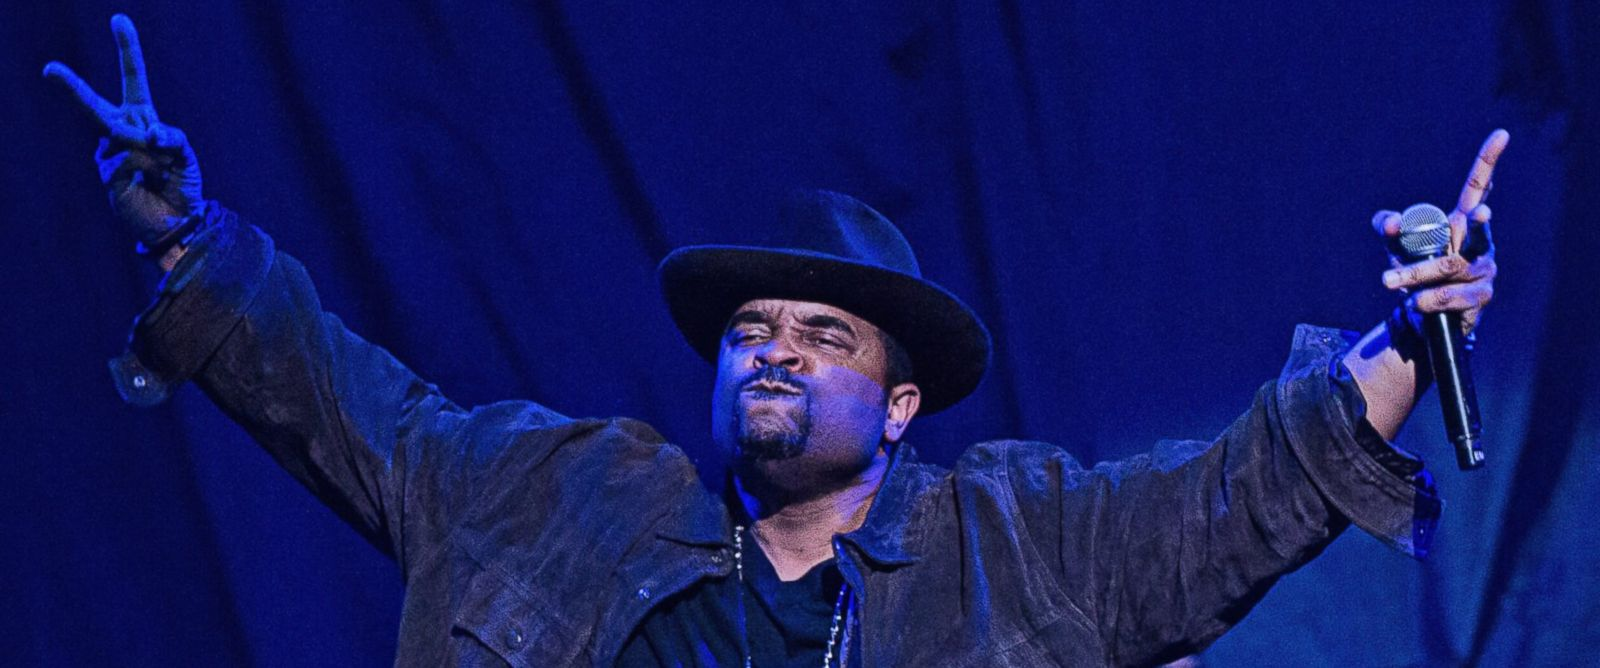 PHOTO: Sir Mix-a-Lot performs on stage at Key Arena on Dec. 11, 2013 in Seattle.